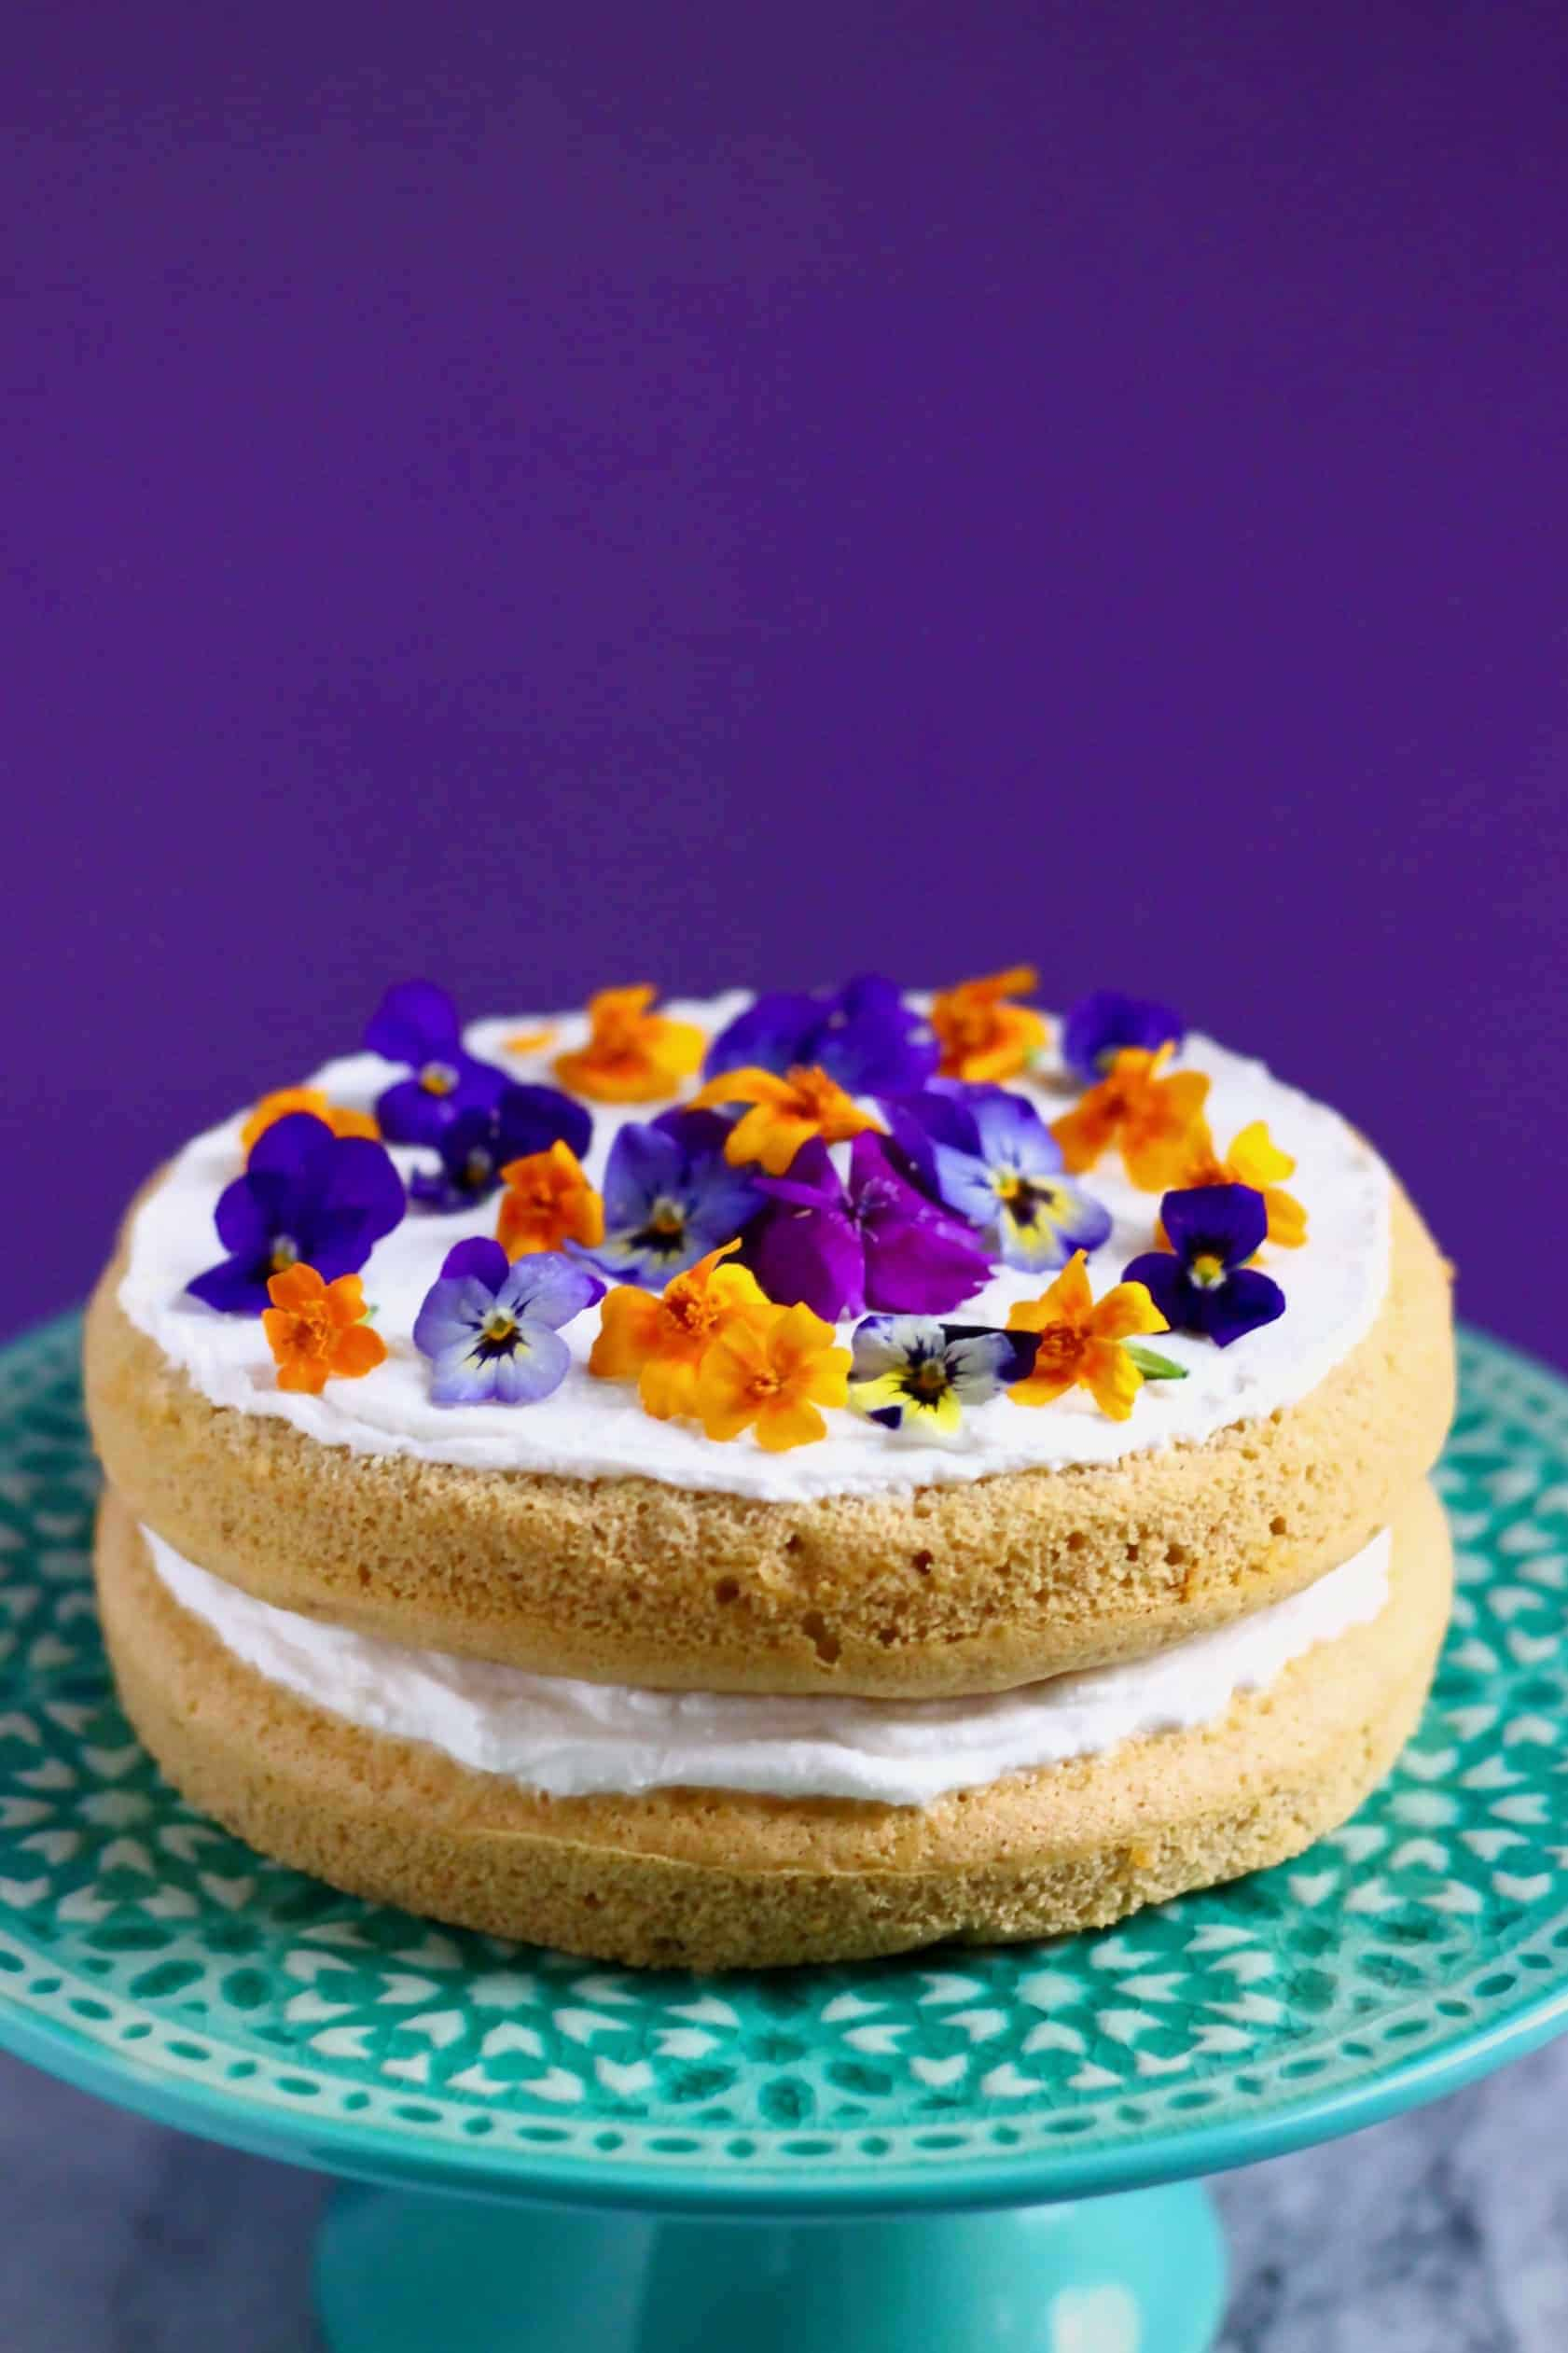 A pumpkin sponge sandwiched with white frosting topped with purple and orange flowers on a cake stand